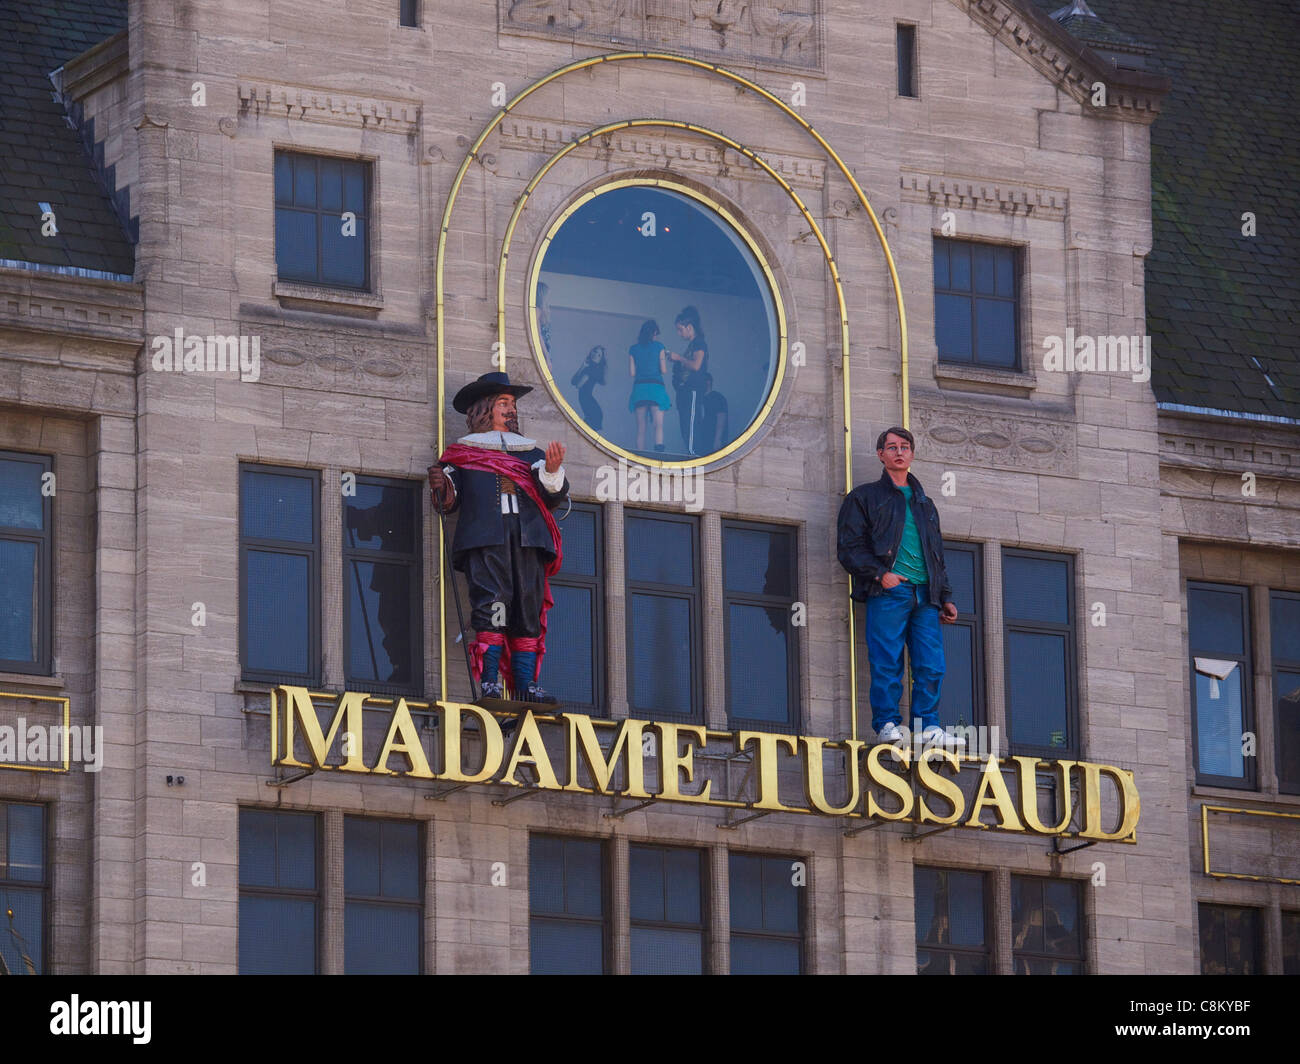 Madame Tussaud house of wax Amsterdam the Netherlands - Stock Image